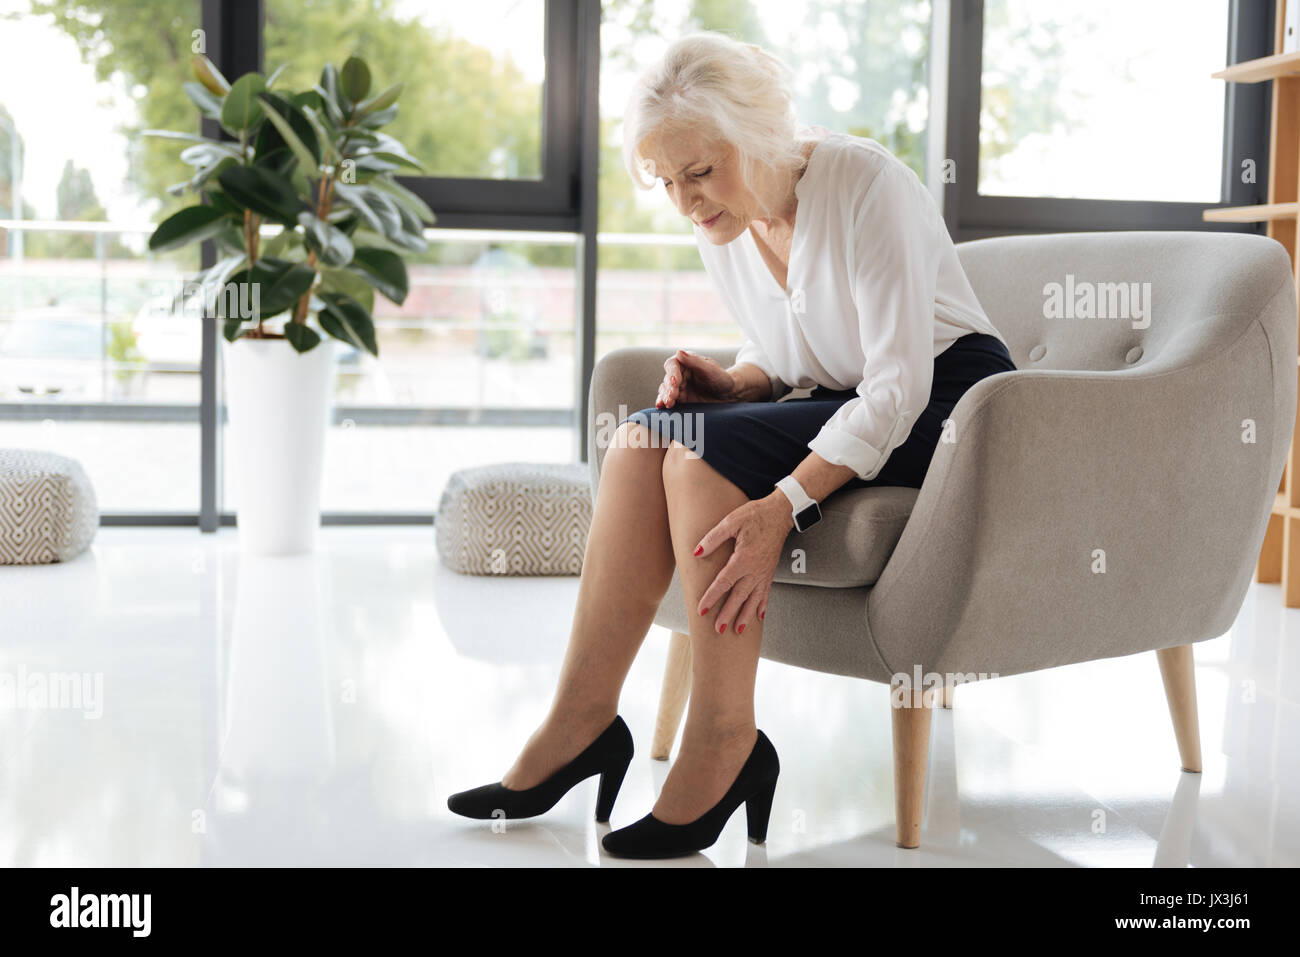 Unhappy cheerless woman looking at her legs - Stock Image